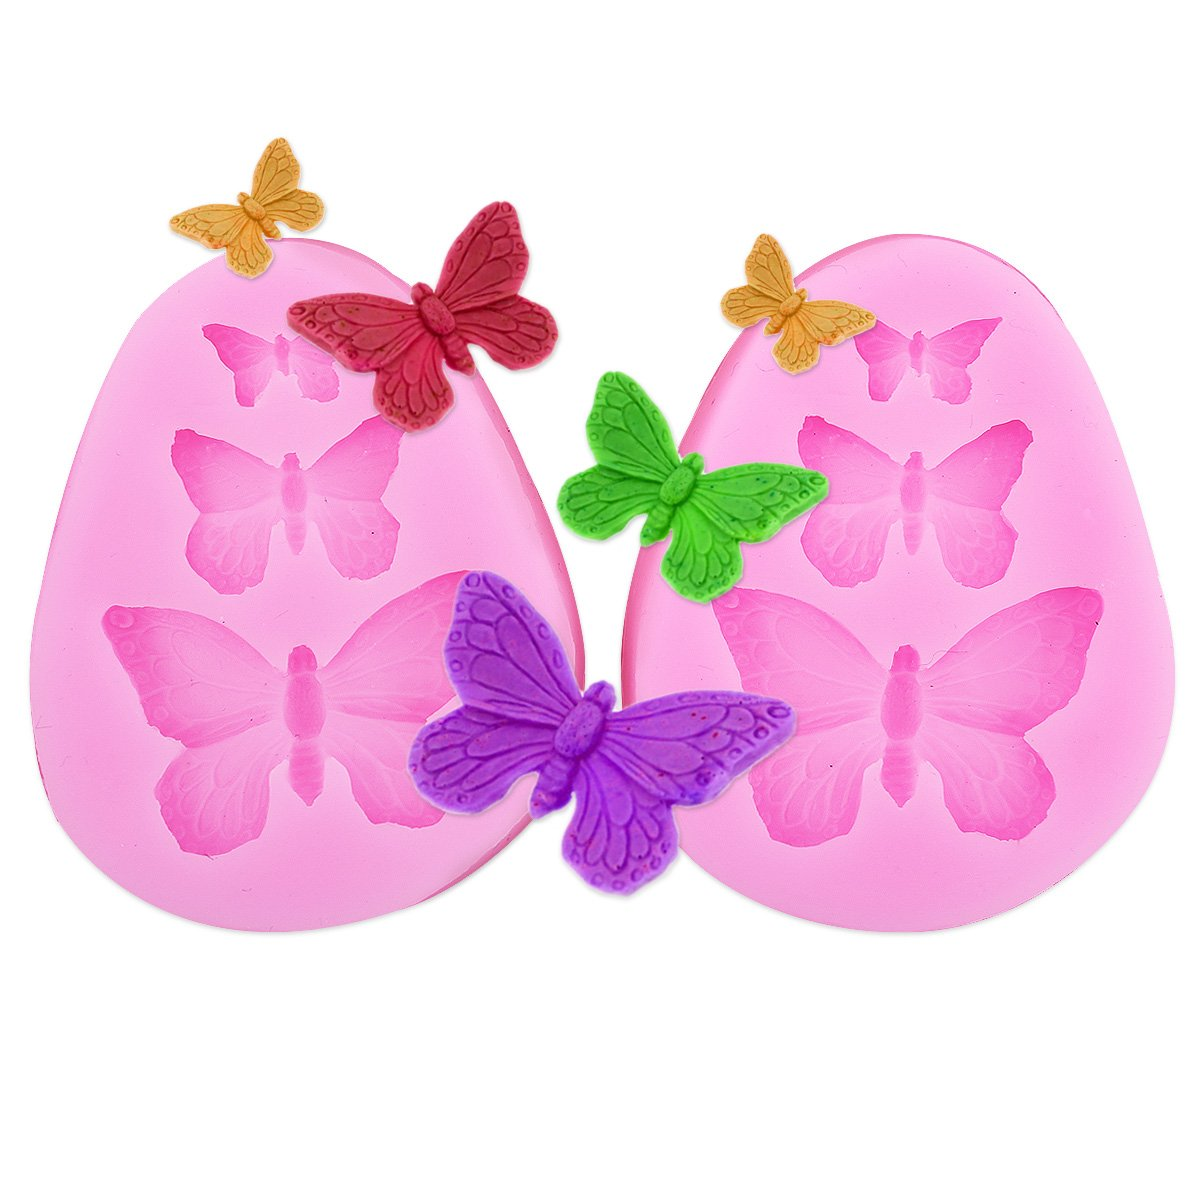 2x Butterfly Shaped Silicone Mould Surepromise